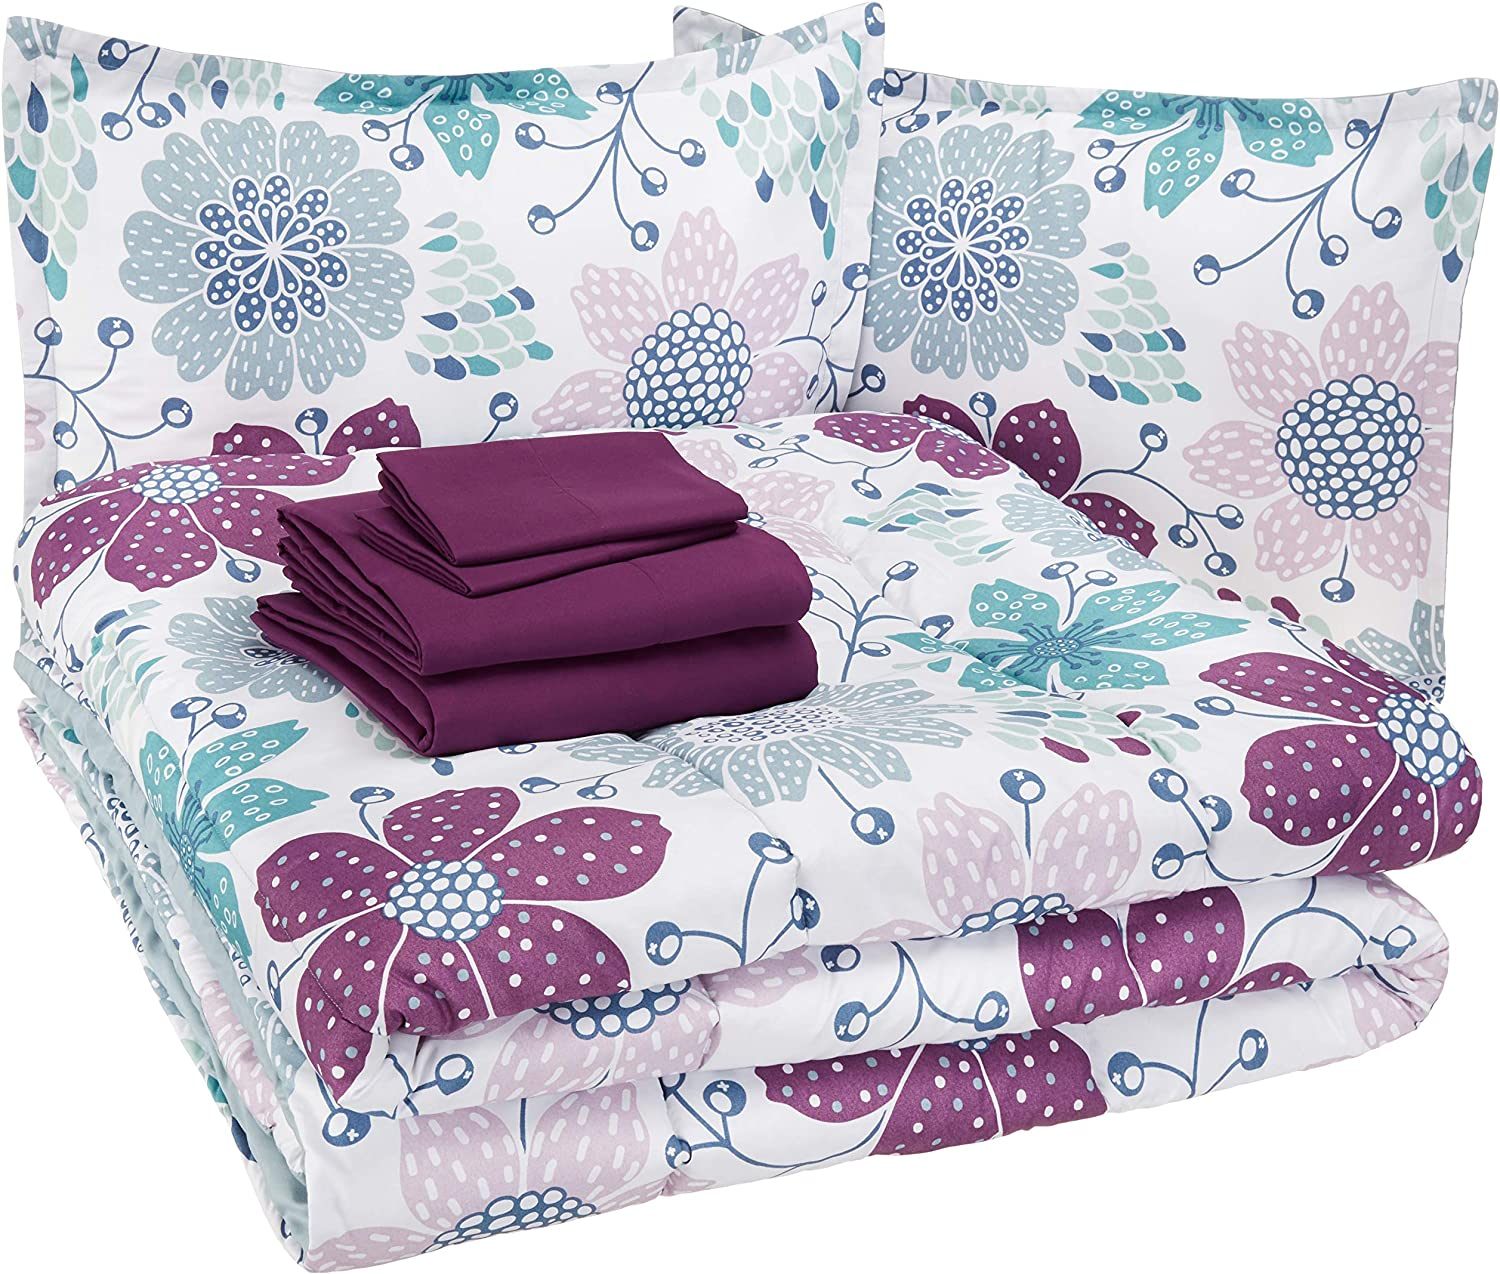 AmazonBasics Easy-Wash Microfiber Kid's Bed-in-a-Bag Bedding Set - Full or Queen, Purple Flowers